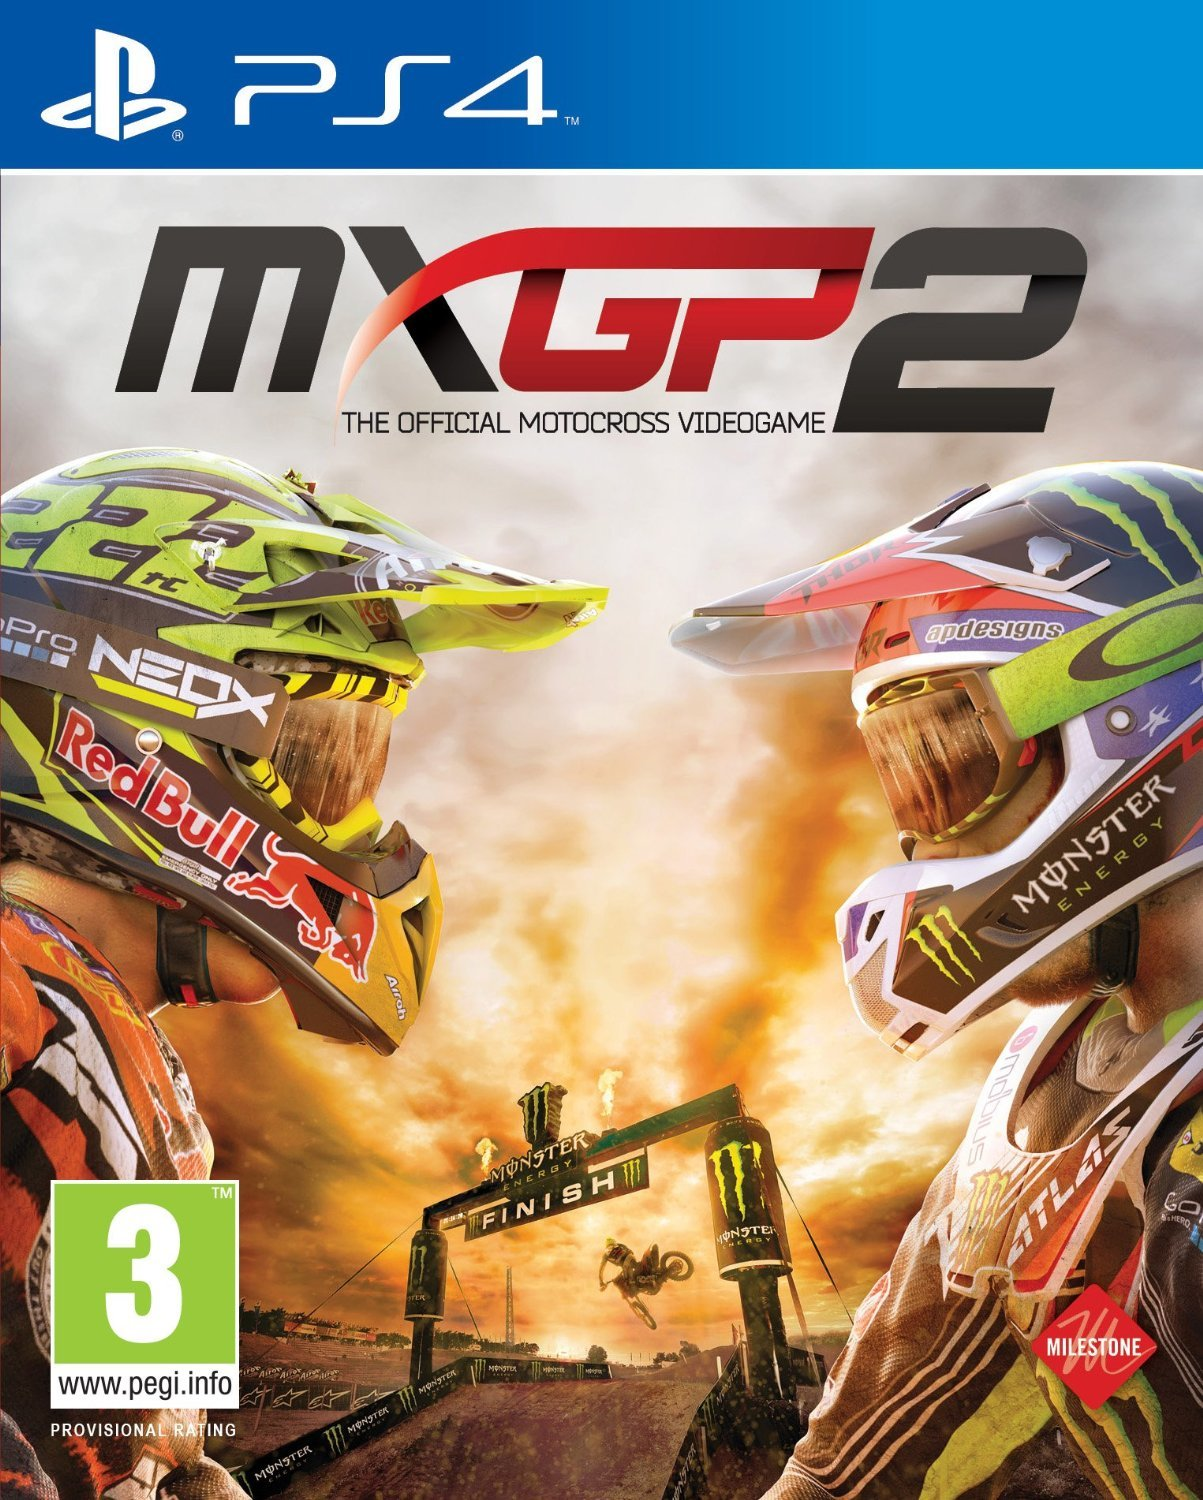 MXGP 2 - The Official Motocross Videogame | PS4 | In-Stock - Buy Now ...